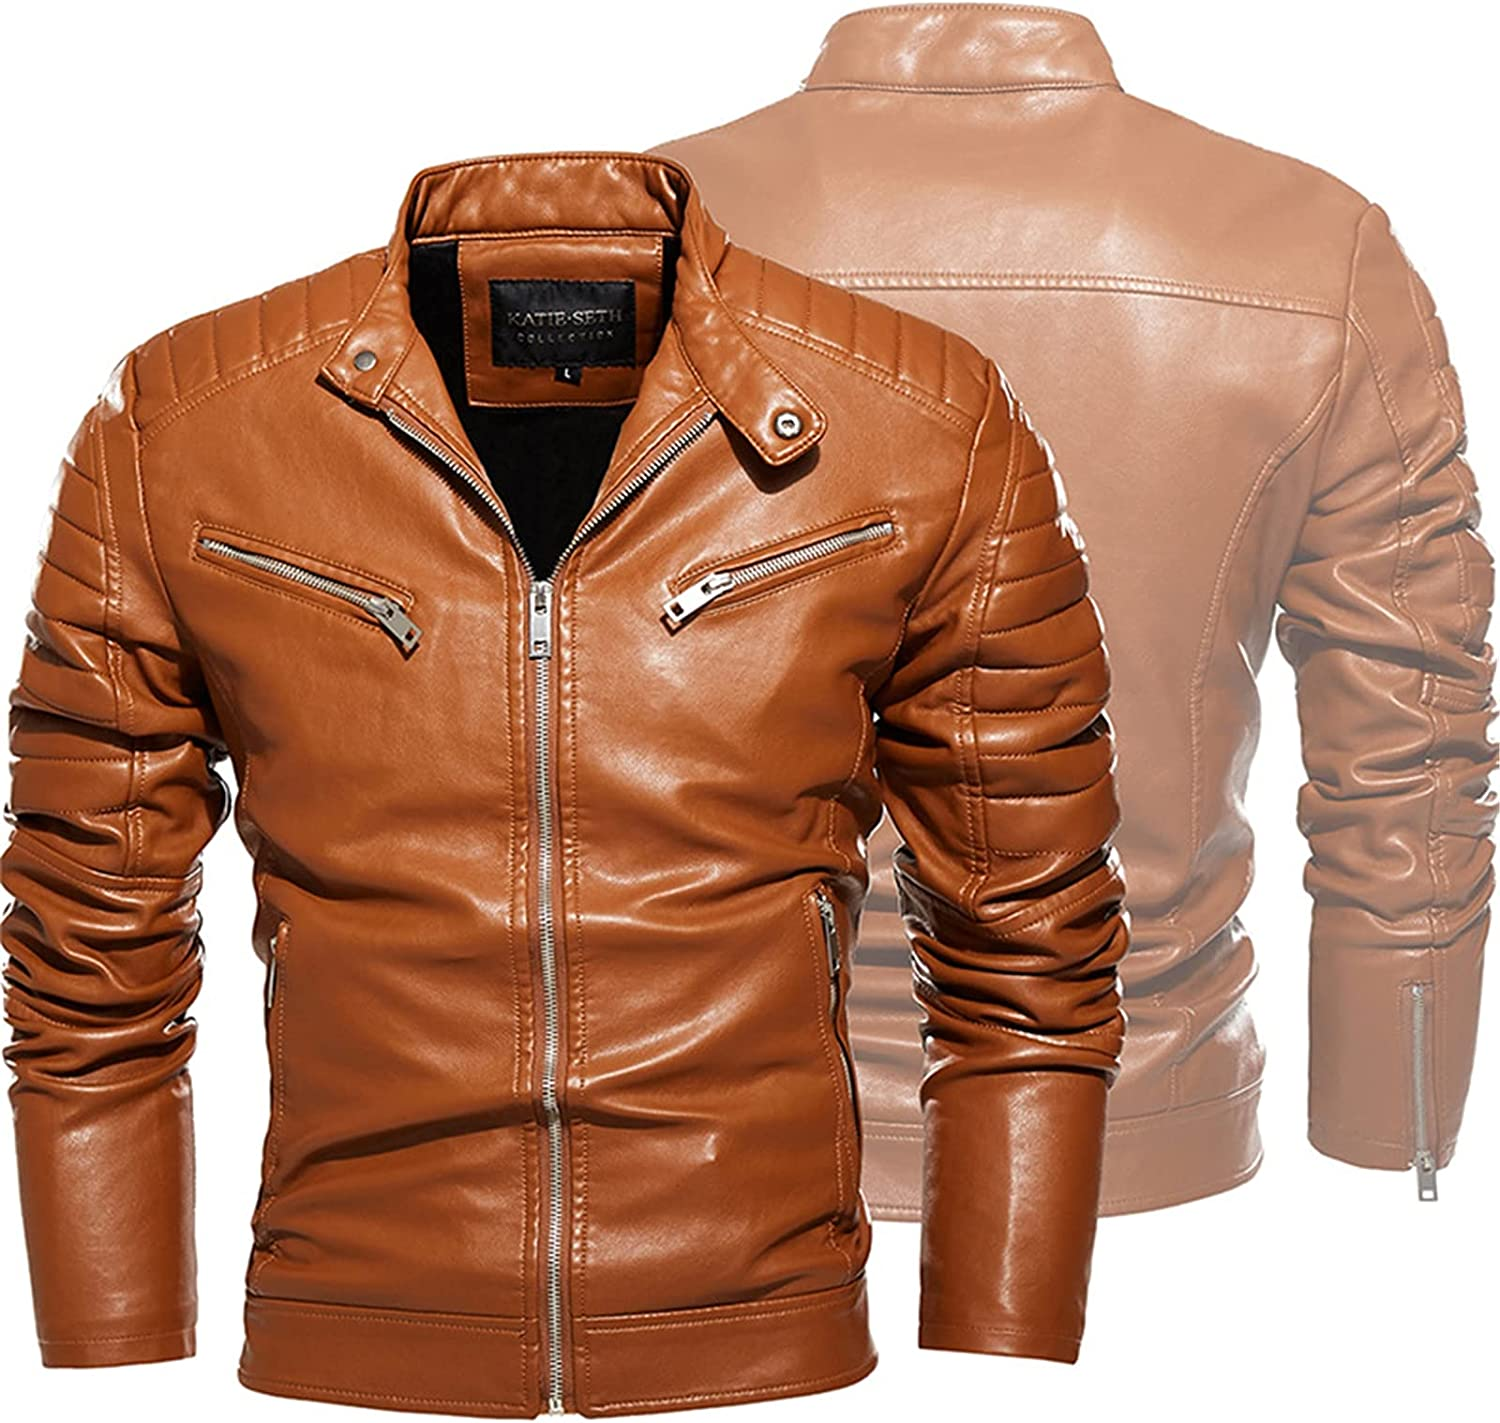 Men's Vintage Stand Collar Leather Jackets,PU Leather Motorcycle Jacket Plus Fleece Jacket,Casual Fit Long Sleeves